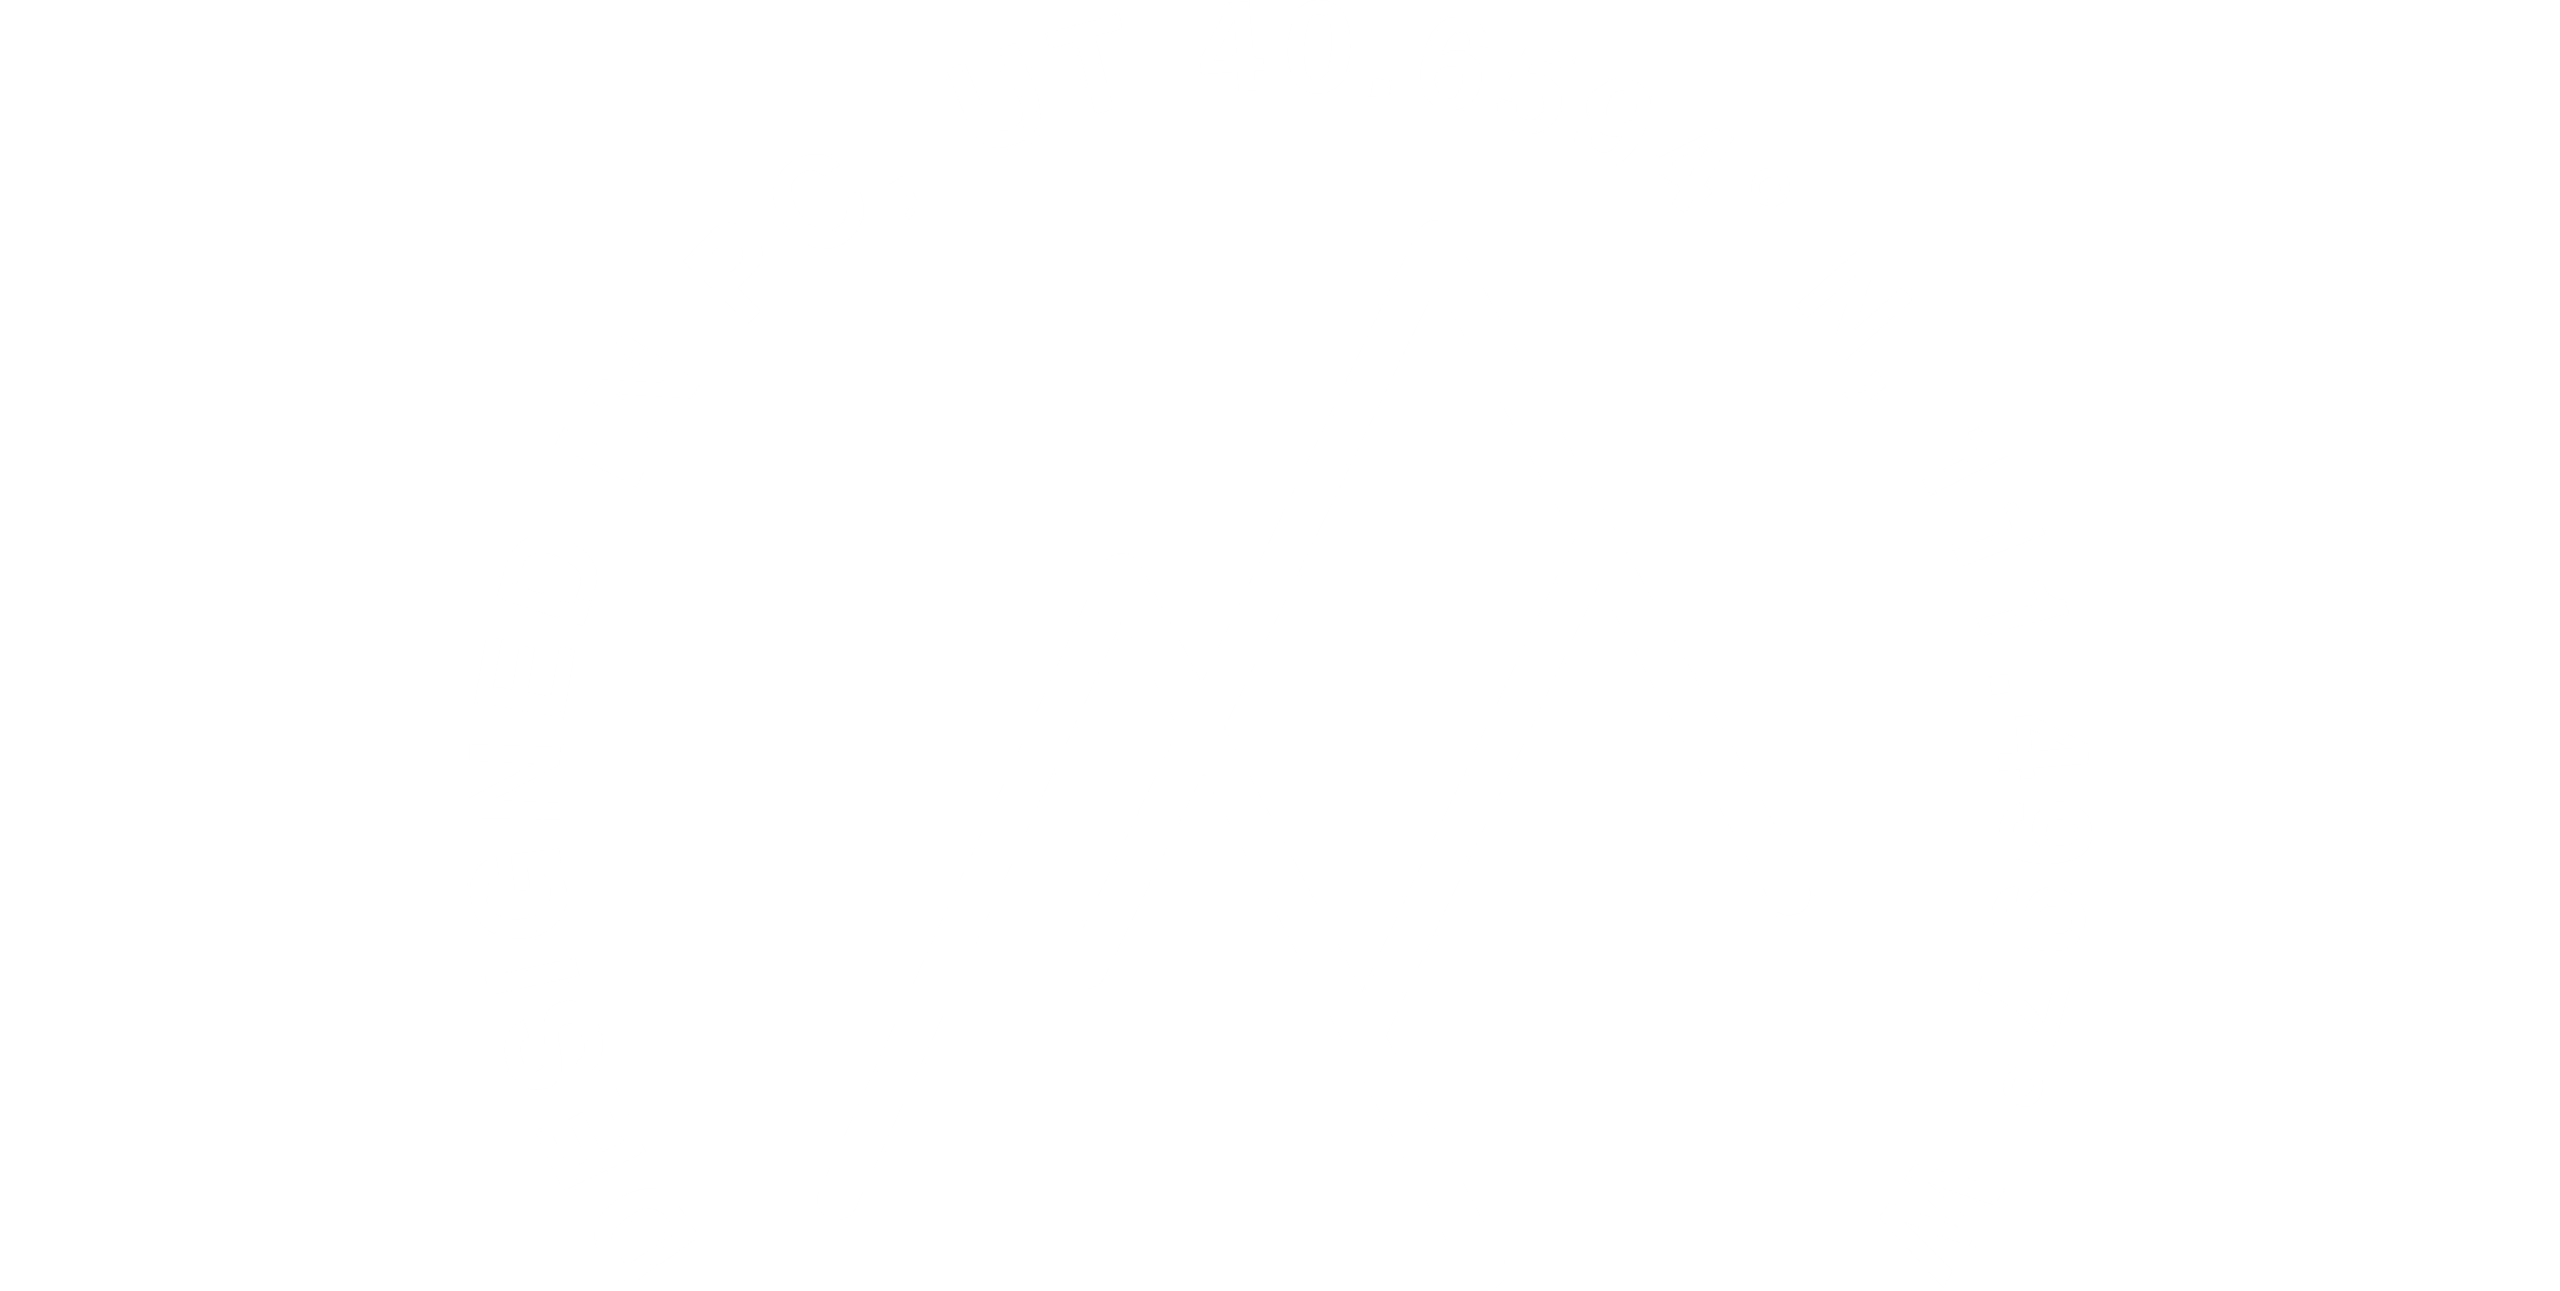 We spend hundreds of hours designing, testing and perfecting every Skullcandy product in our Park City, Utah headquarters. But our engineers aren't your typical corporate lab-coat-wearing technicians. They're people who love music. They live for adventure. And they know what it's like to work on the go. Probably a lot like you.